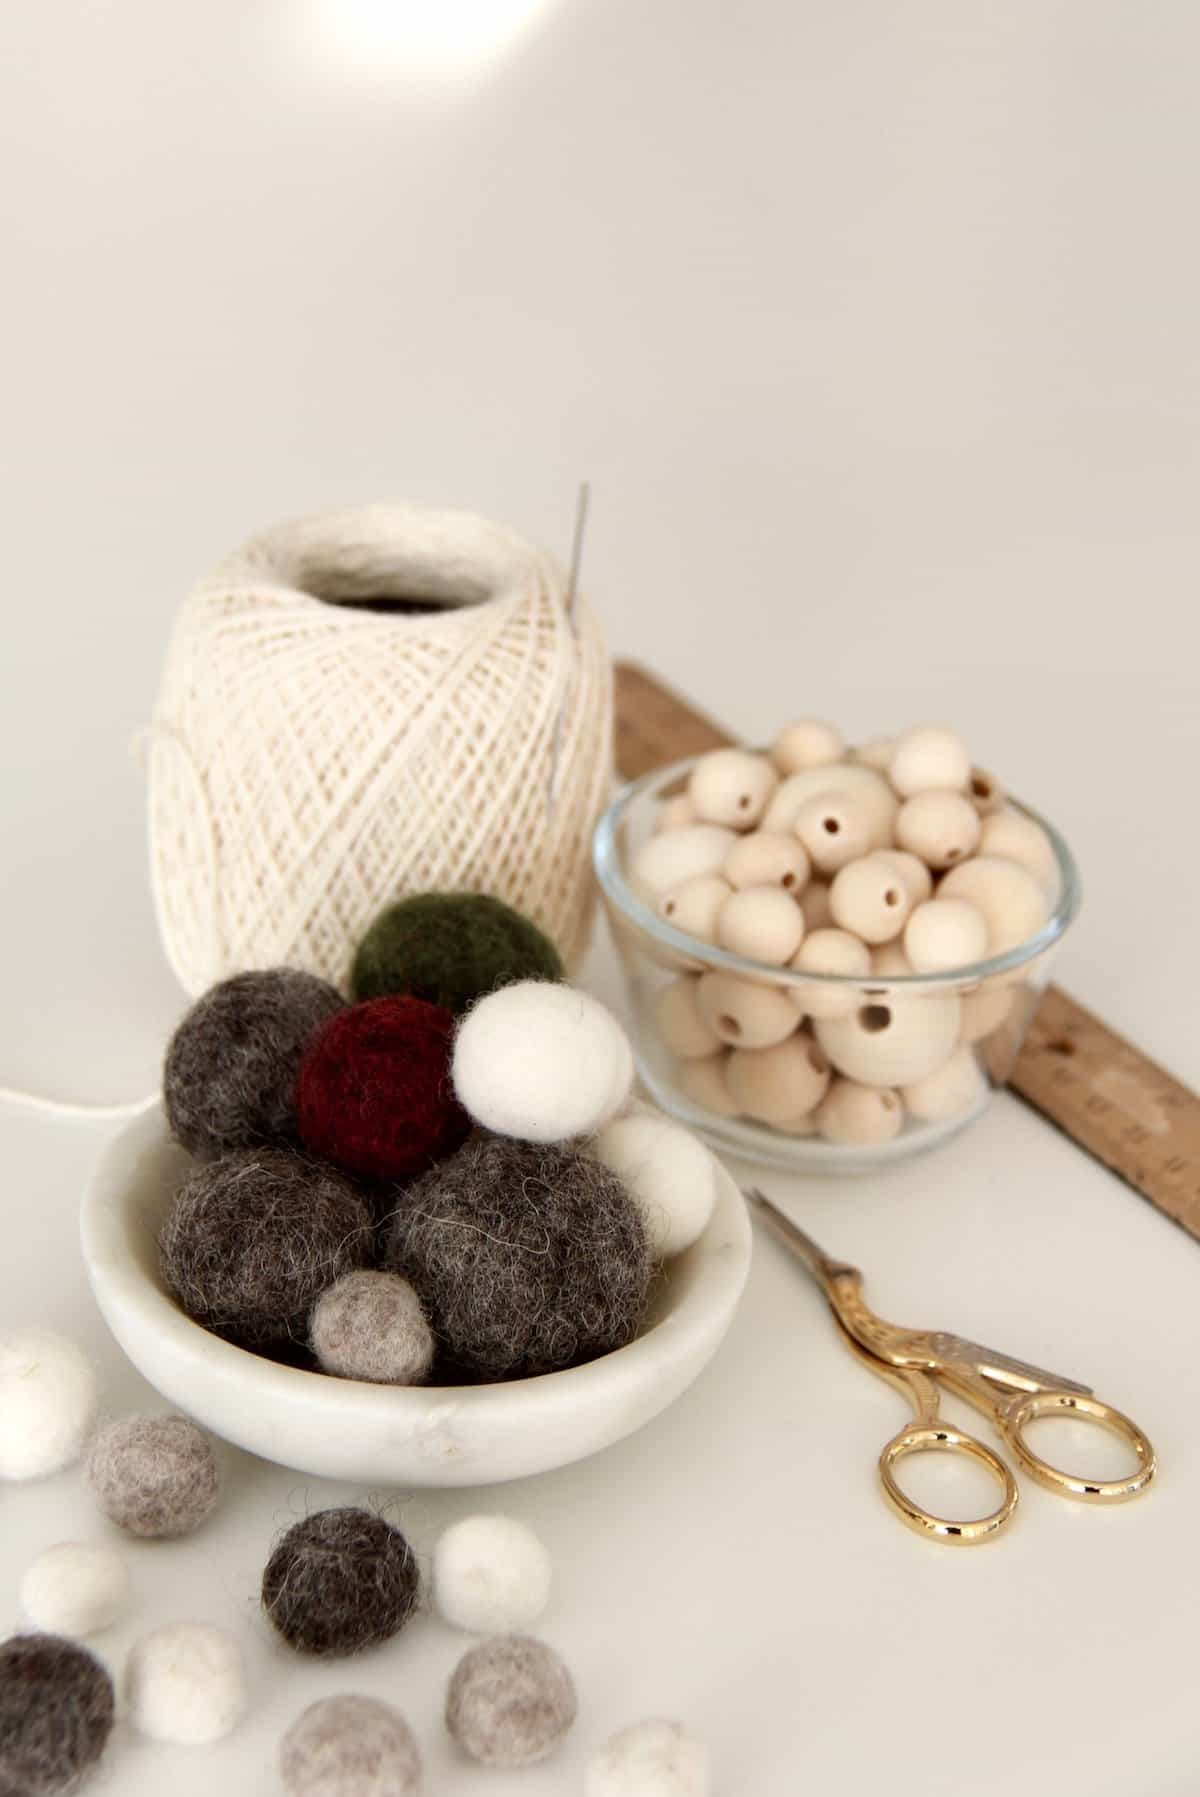 Handmade grey, green, and white wool felt balls in a small bowl, along with wooden beads, string, and sewing scissors